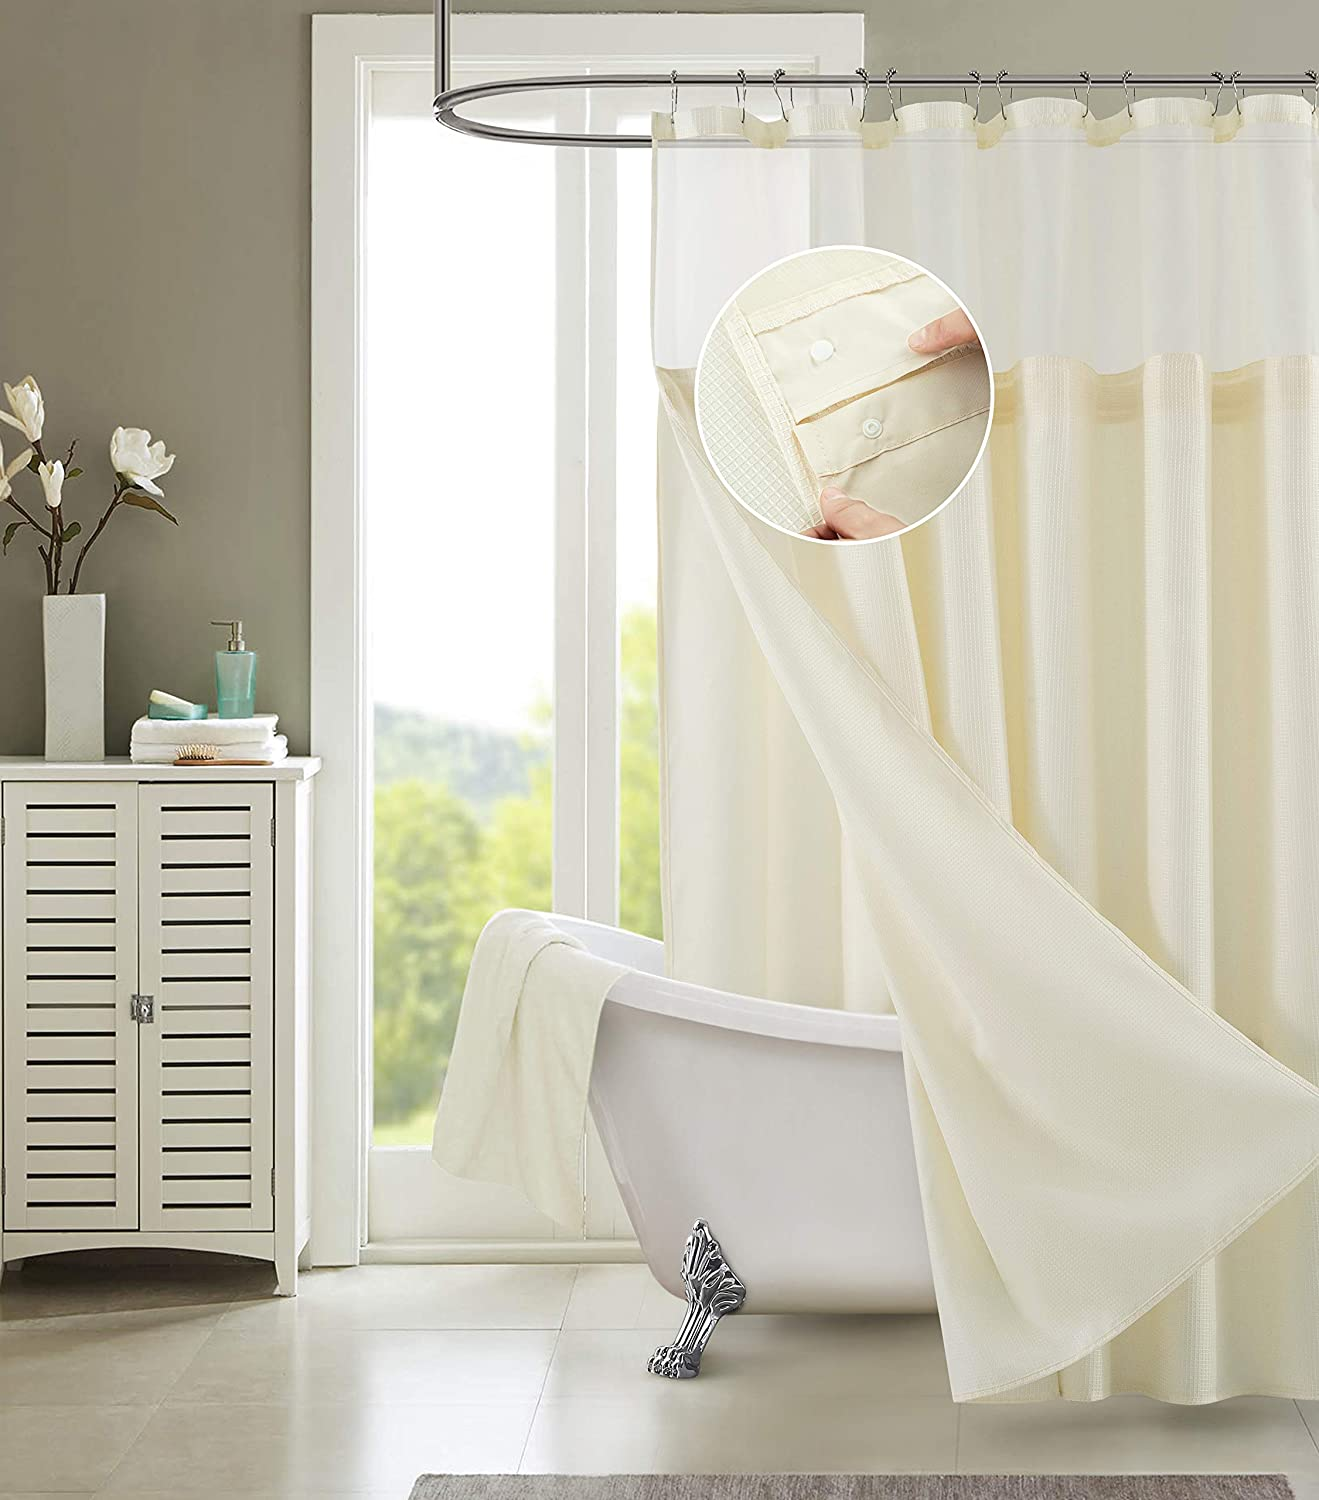 Dainty Home CSCDLIV Hotel Shower Curtain, Ivory, 72 x 72 Inch (Pack of 1) - Color May Vary